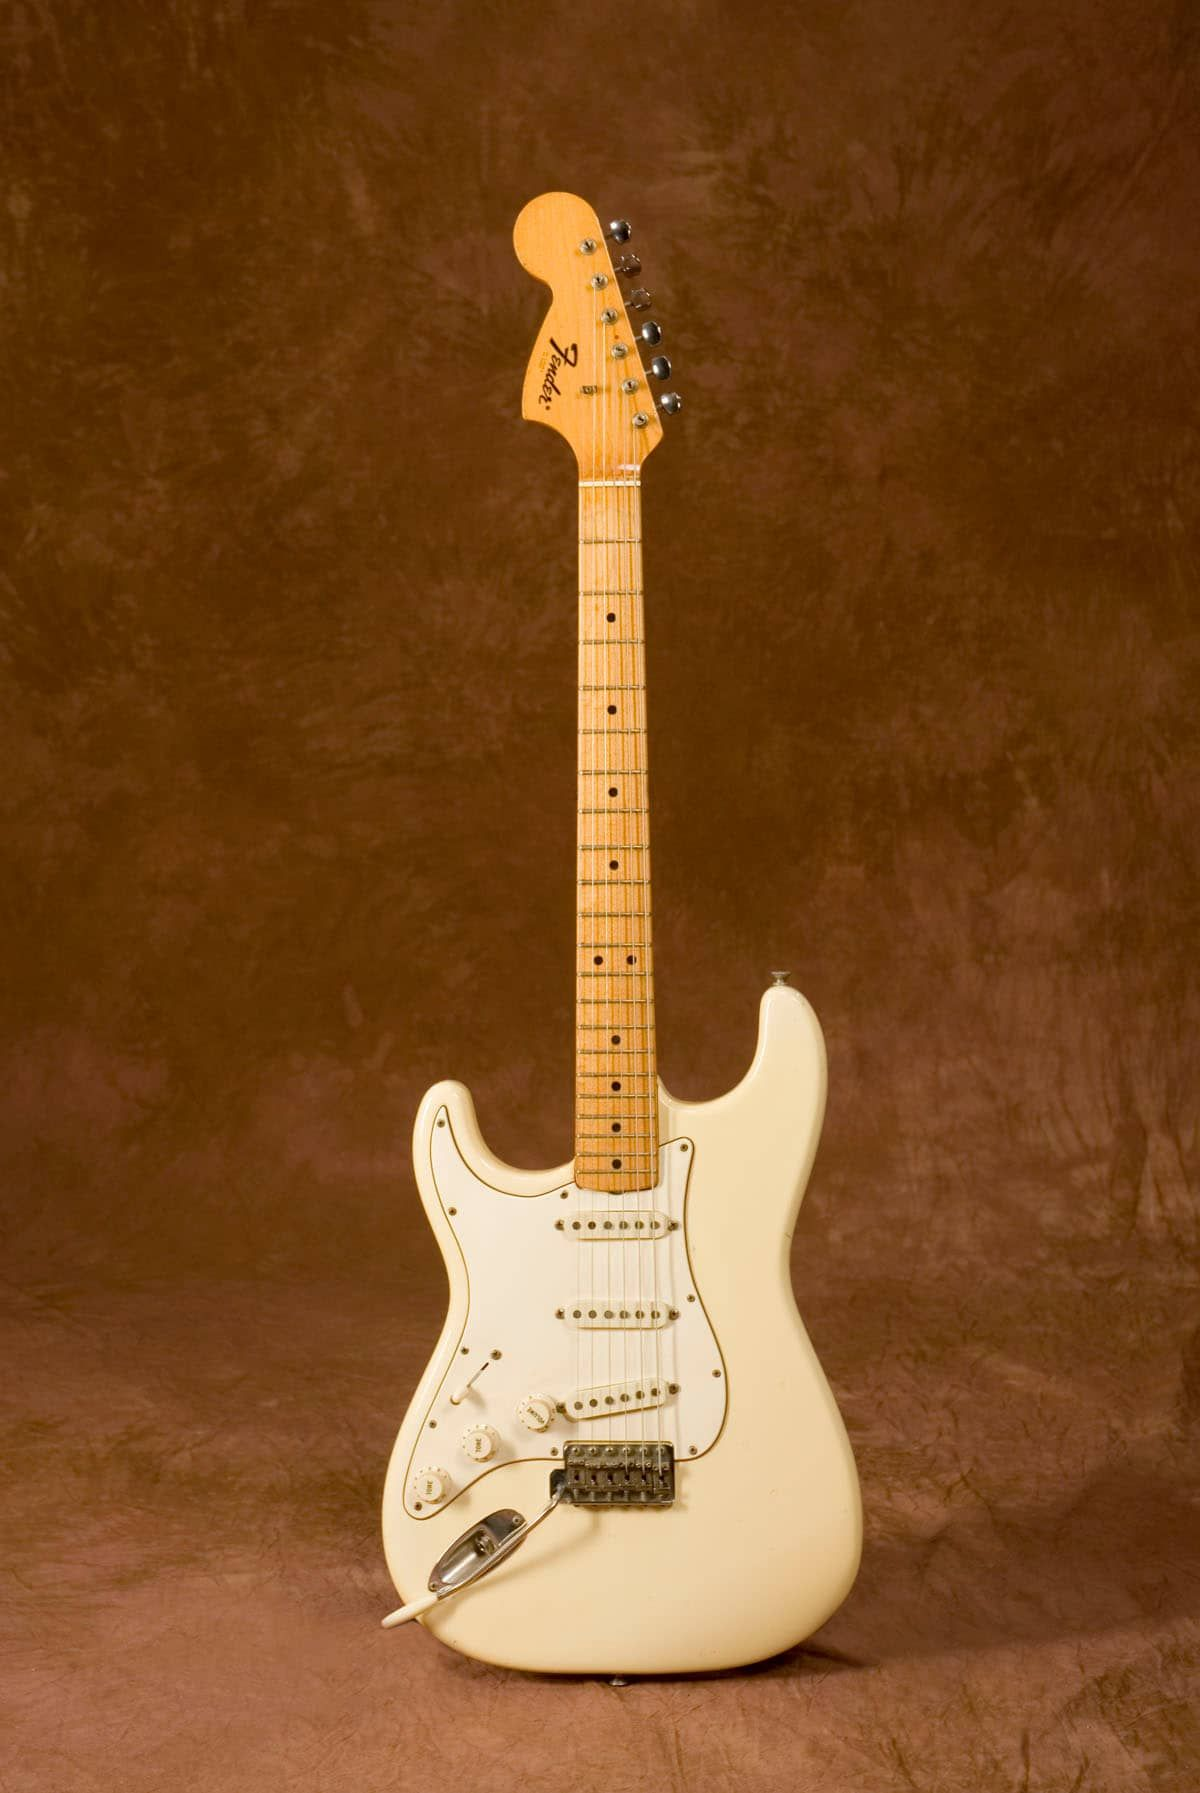 up for sale is jimi hendrix 39 s white left handed 1969 fender stratocaster with maple cap. Black Bedroom Furniture Sets. Home Design Ideas